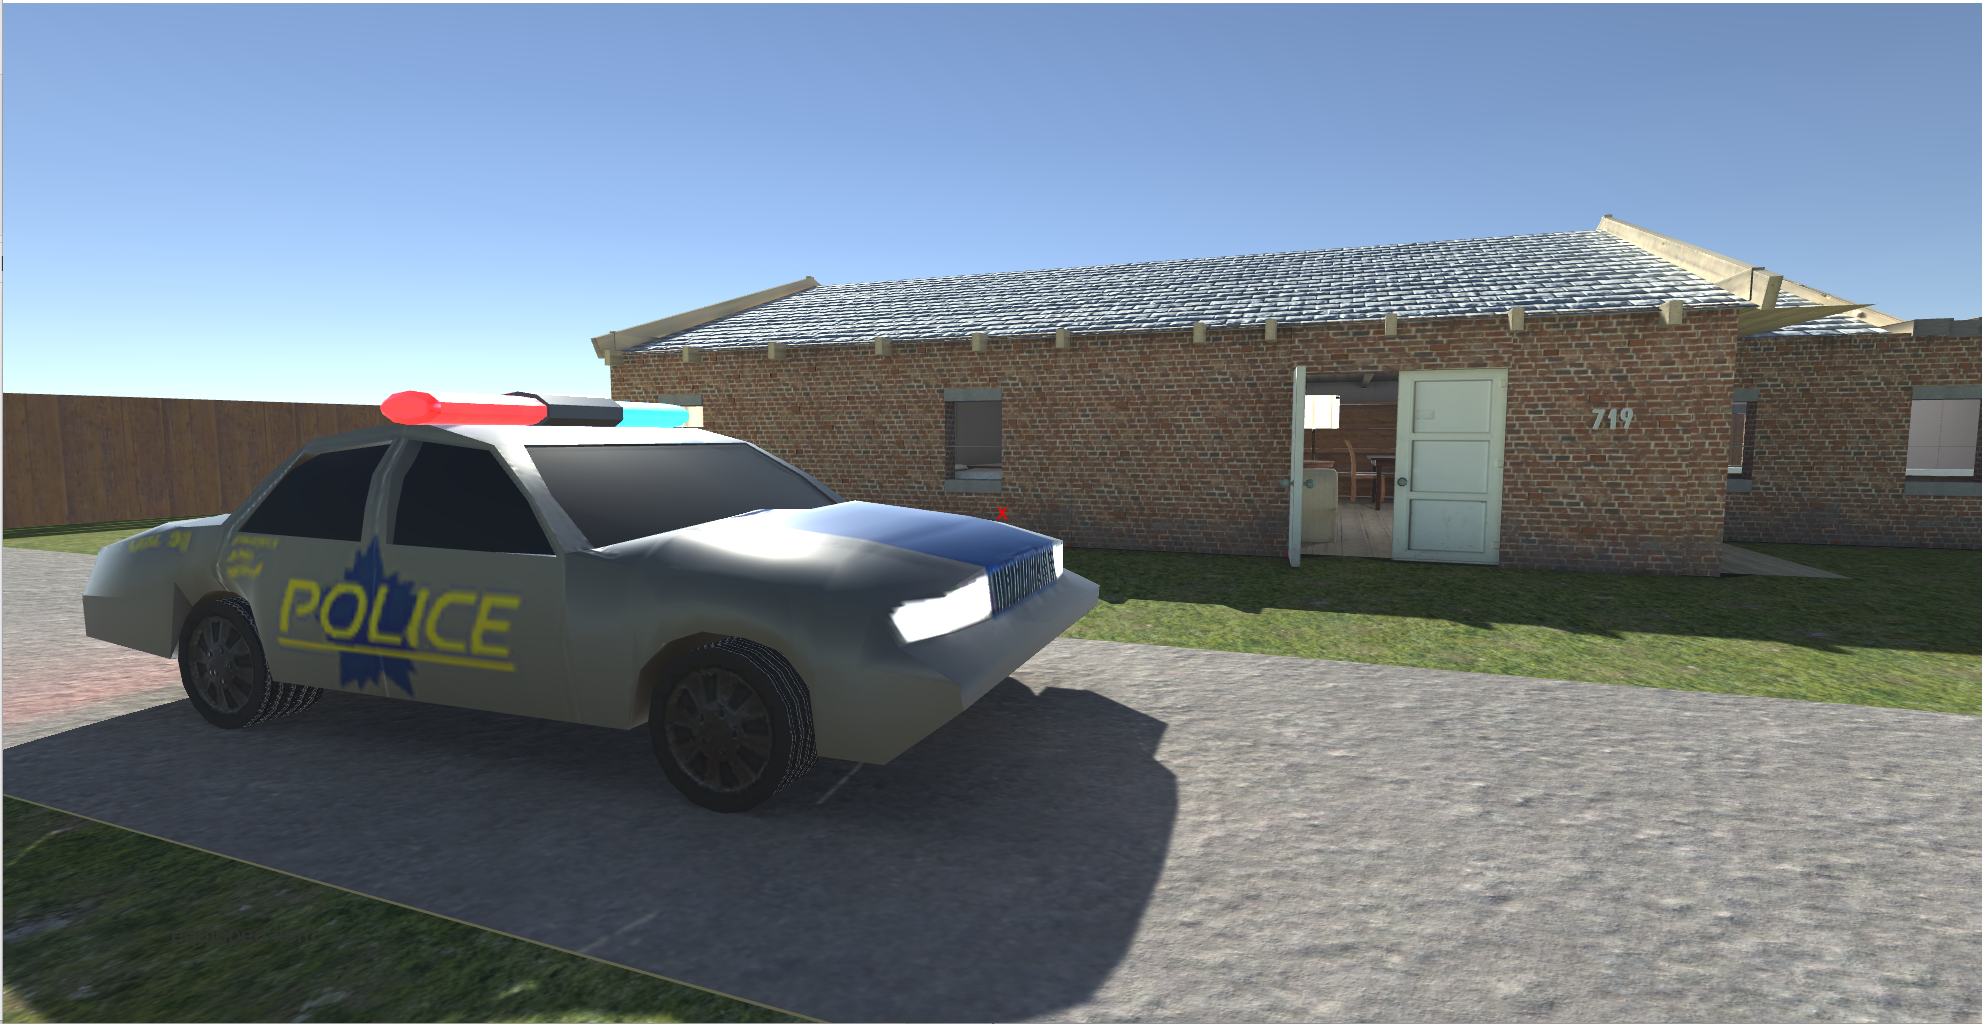 Police_Car_in_Front_of_House.PNG